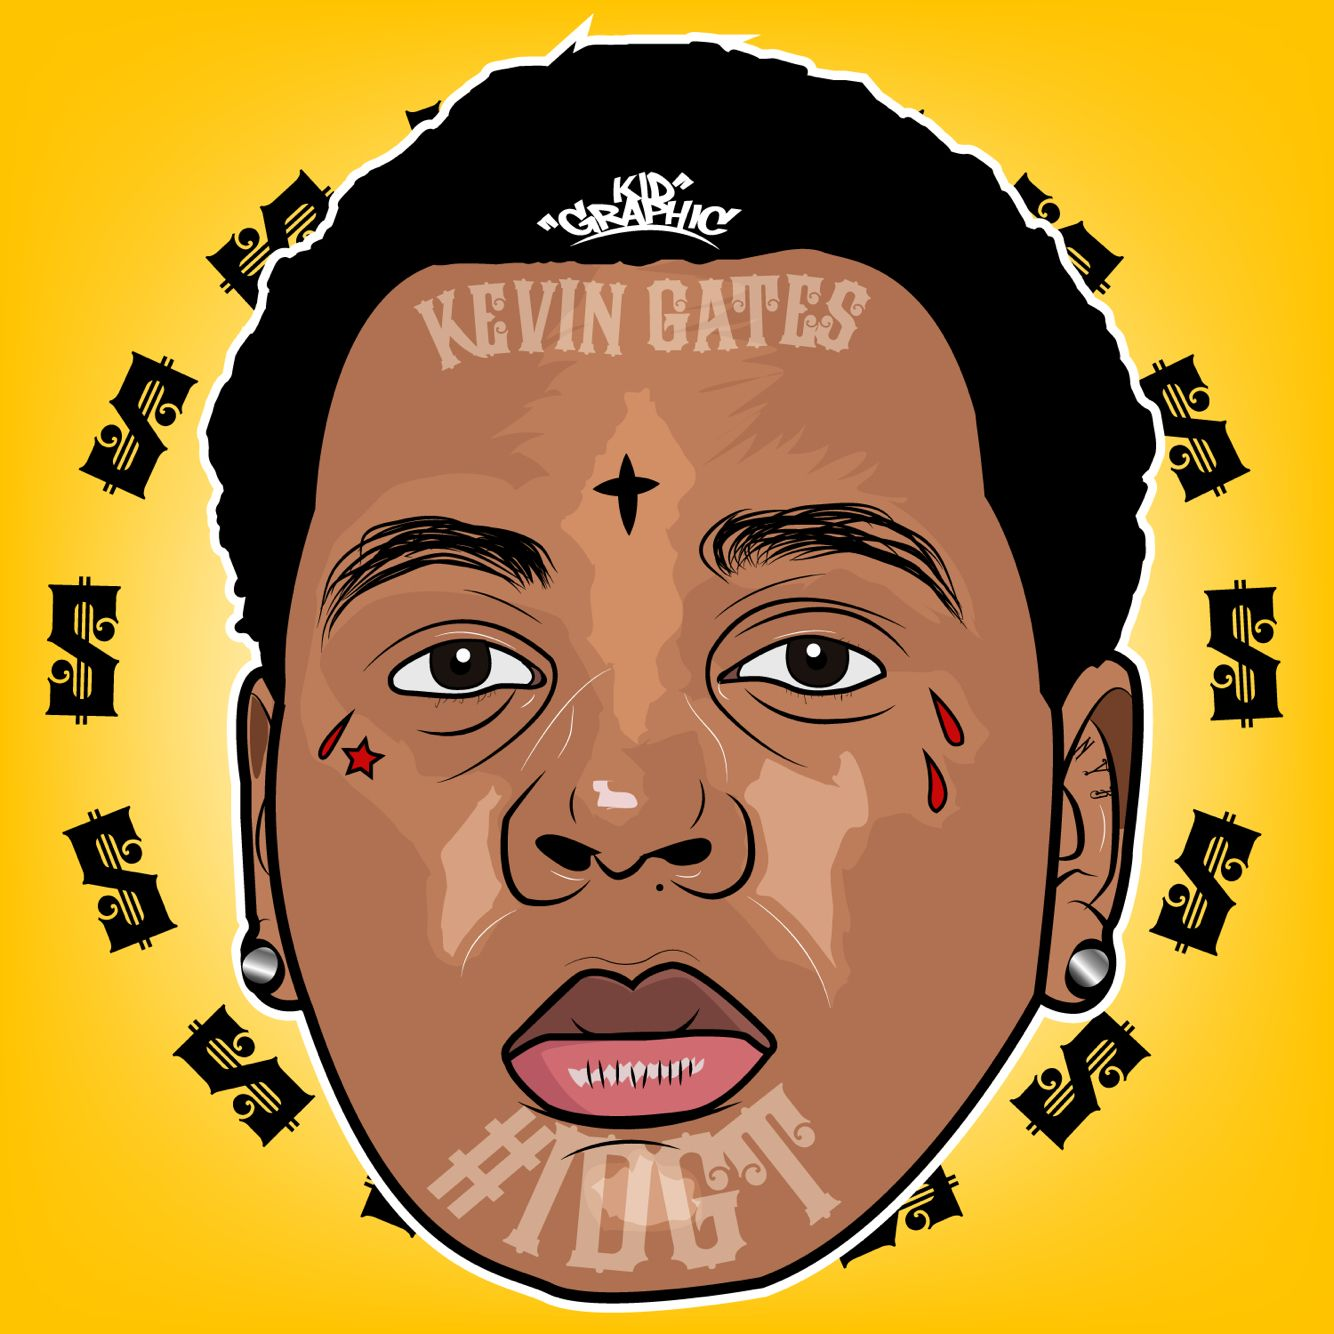 1334x1334 Kevin Gates Black Cartoon Art Kevin Gates